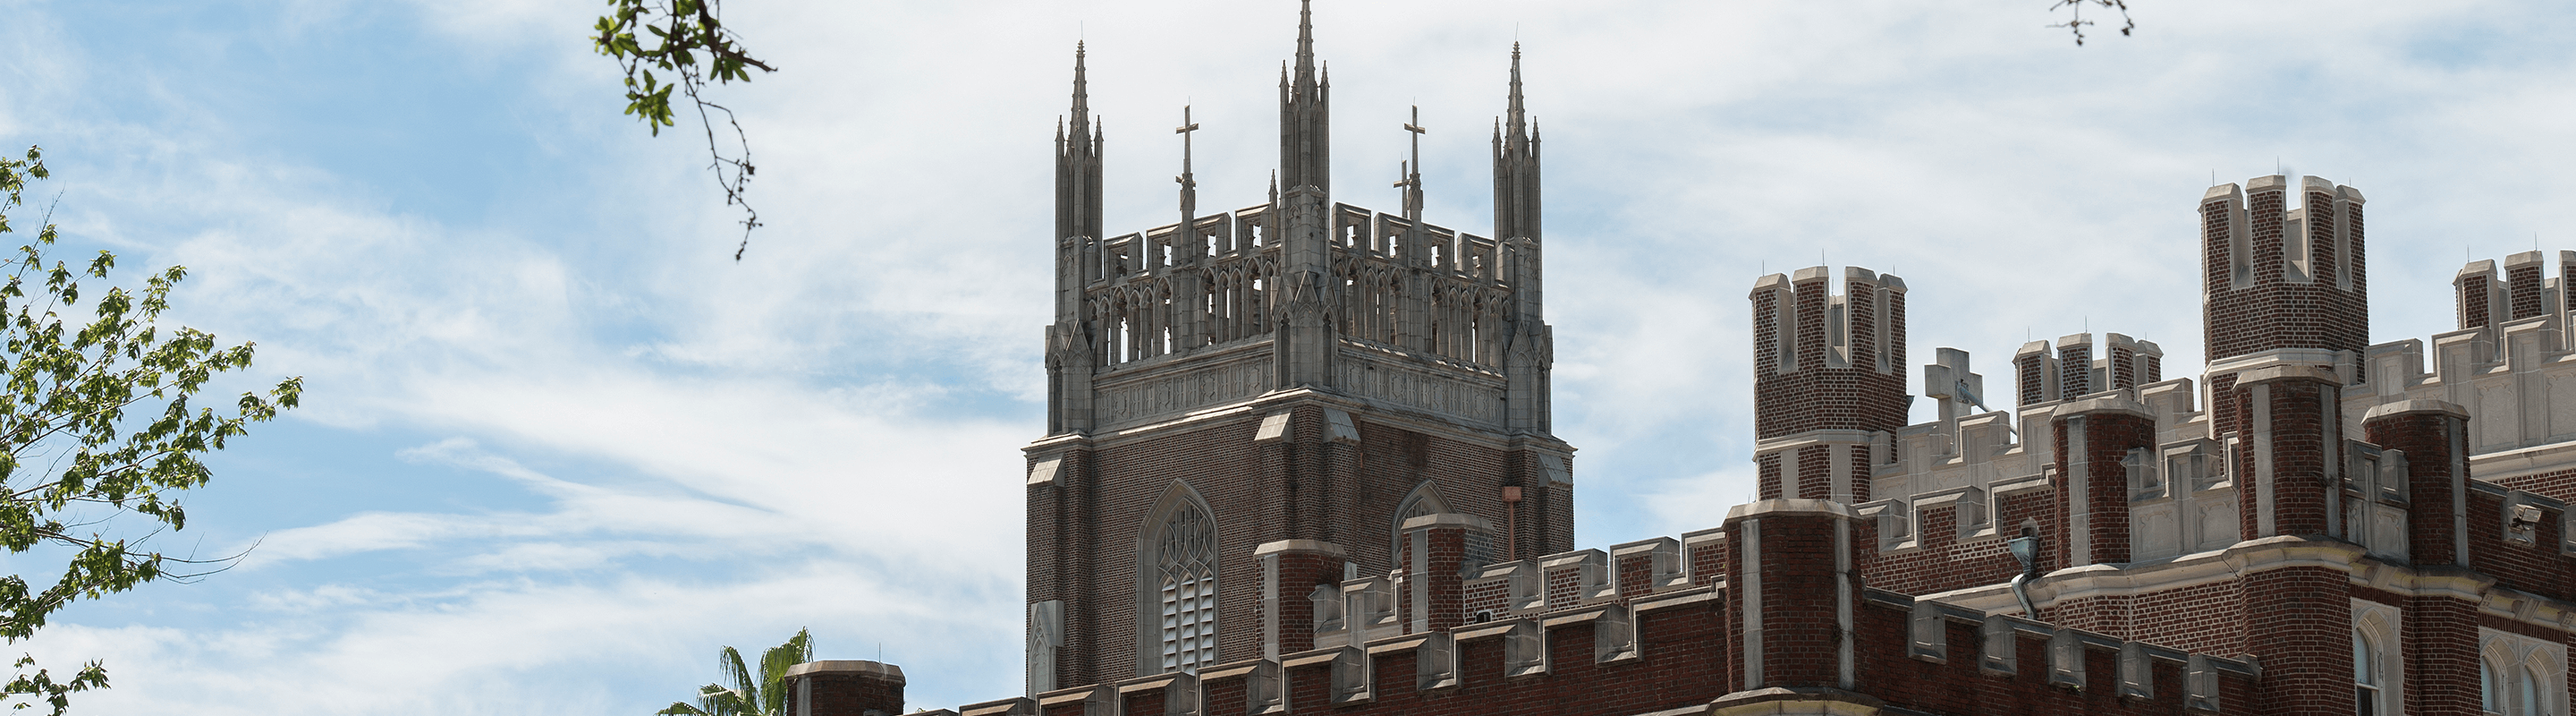 Image of tower of Marquette Hall against blue sky, 3/4 view